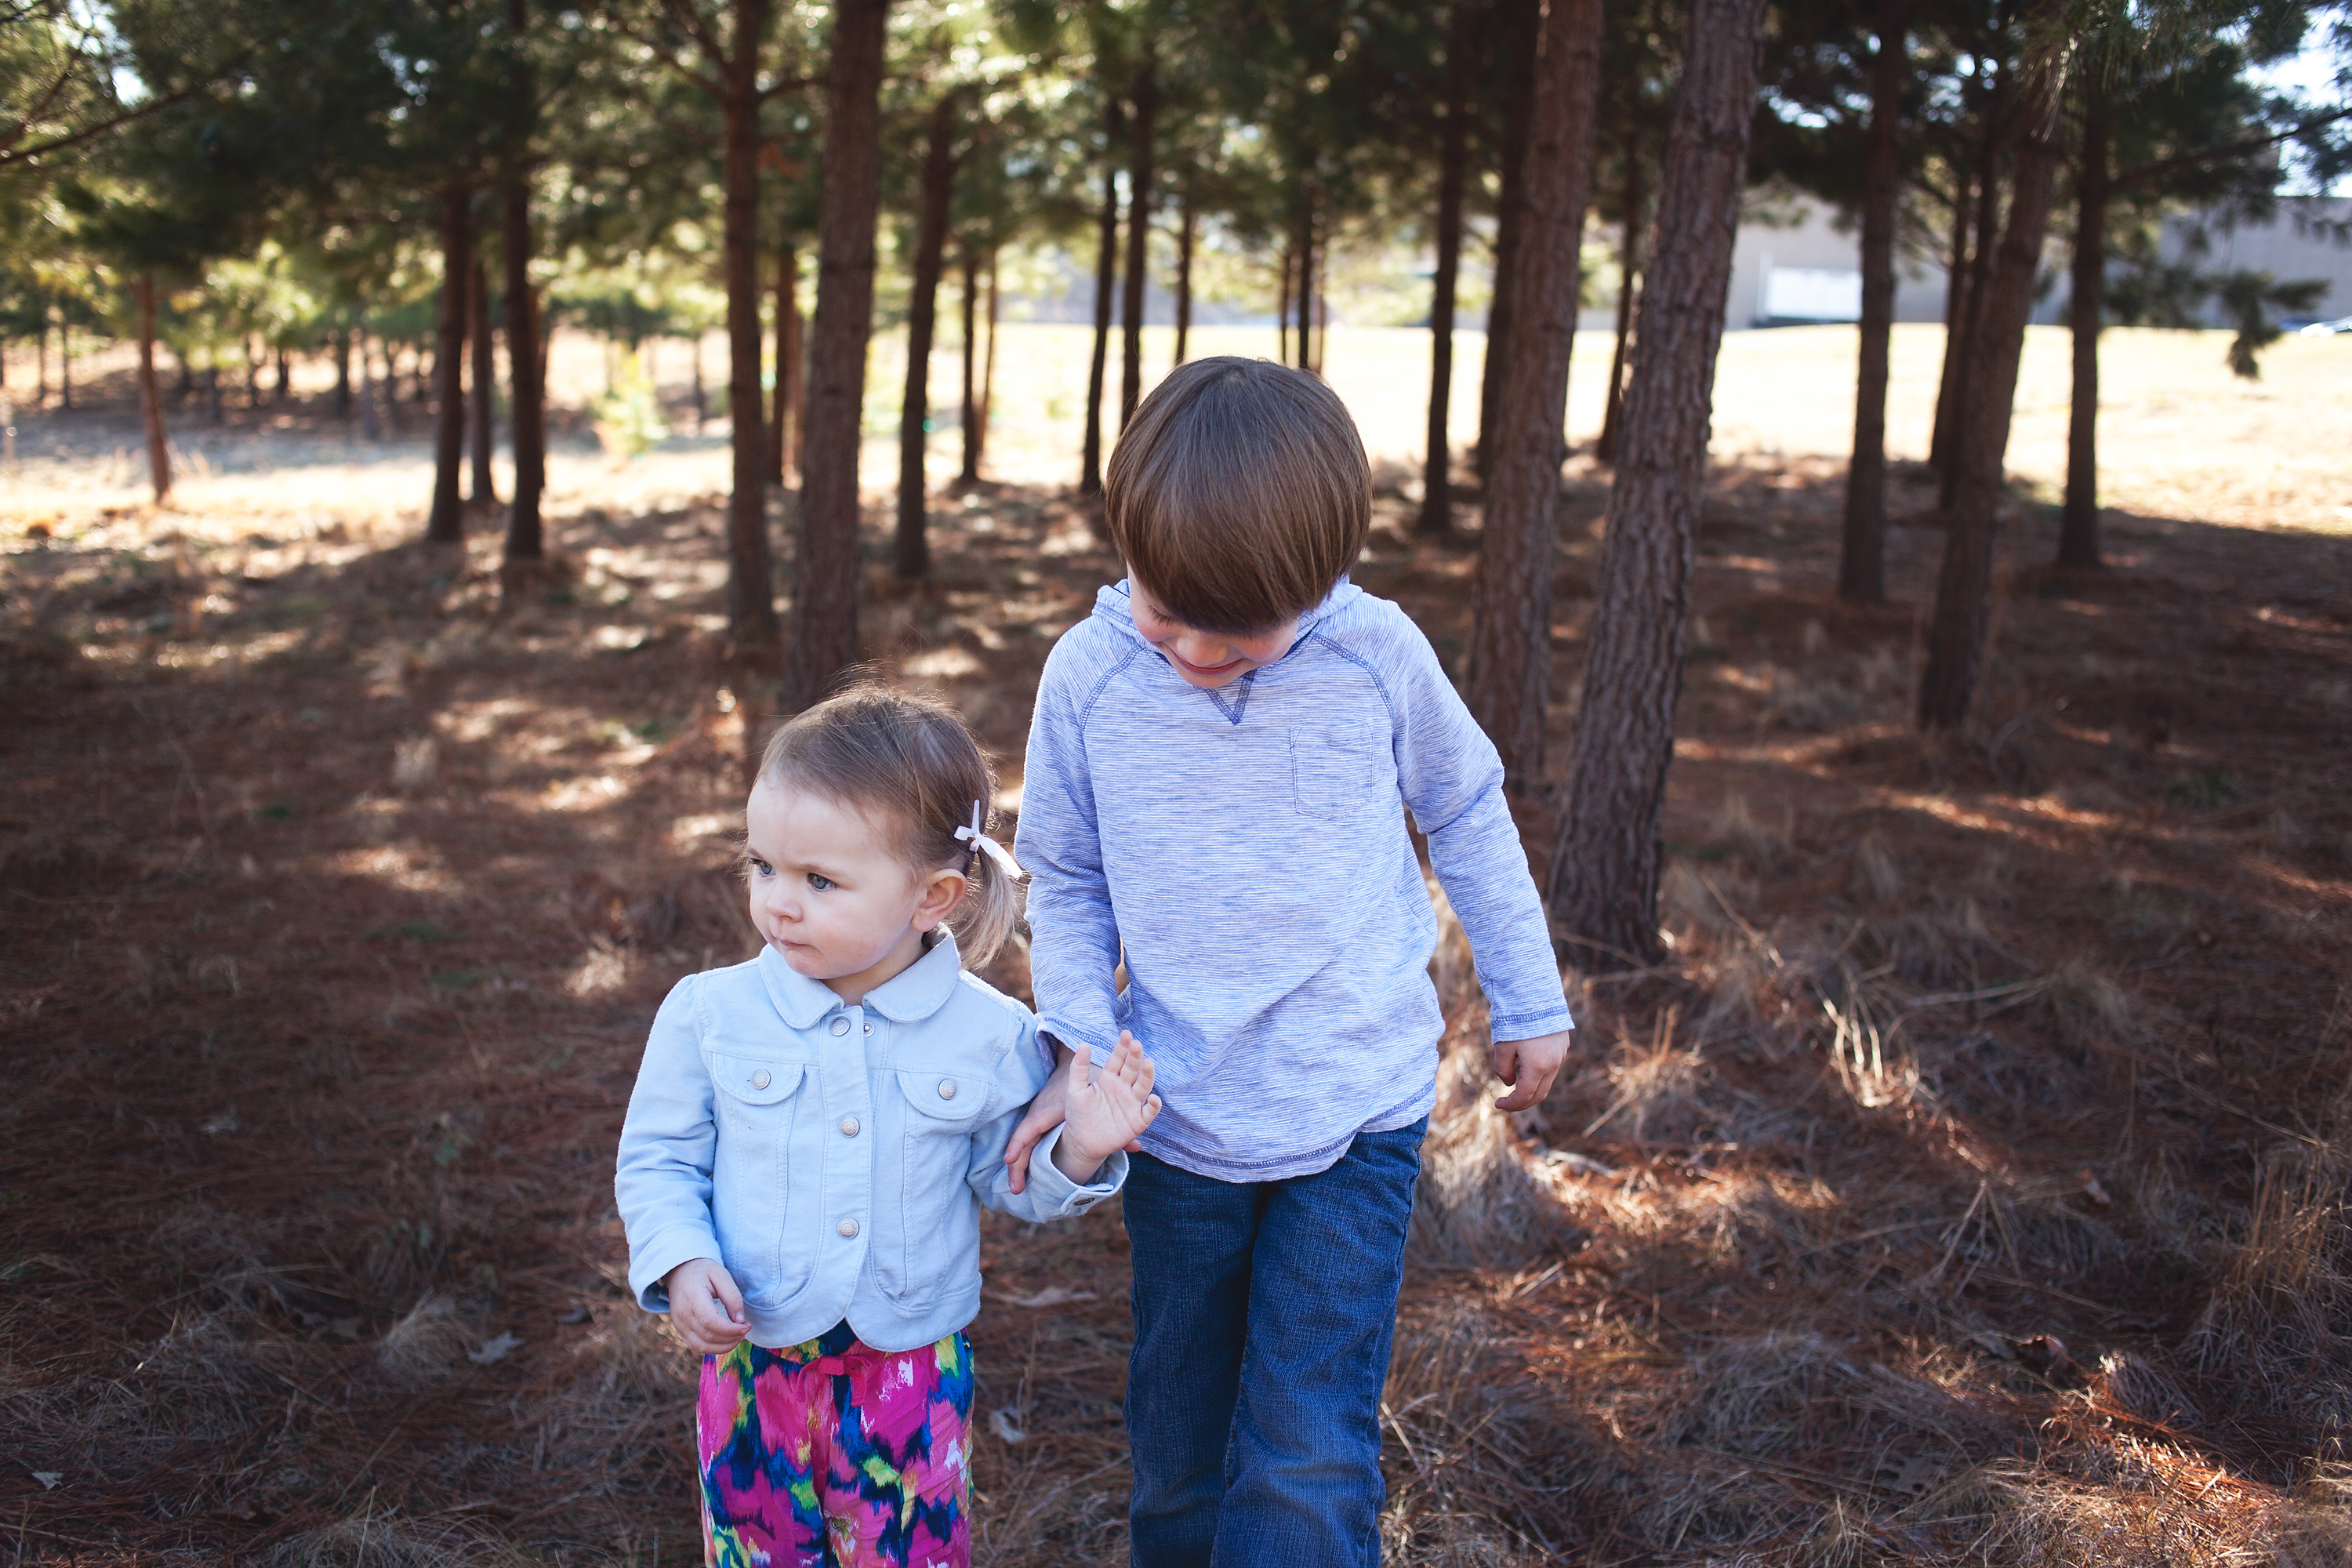 Erica-Mulford-Photography_046-copy